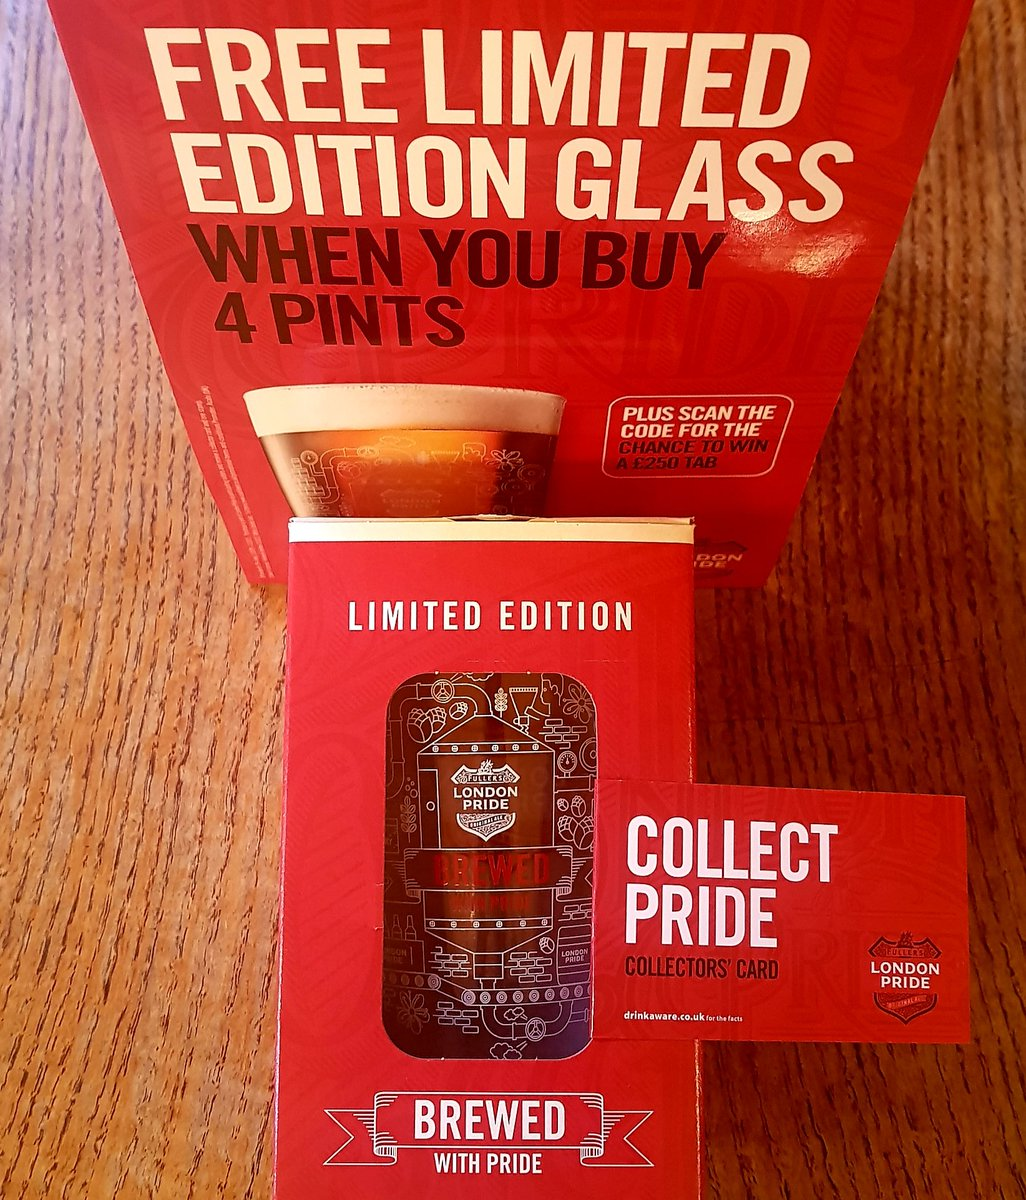 Come and Collect Pride @HDandQ from today! We're giving away amazing limited edition London Pride glassware, as well as £250 tabs!  #londonpride #collectpride #Pub #citypub #aleandpie #fullers #cityoflondon #lovelondon #LimitedEdition #beer #pint #prideoflondon https://t.co/5aWhzNnRN5